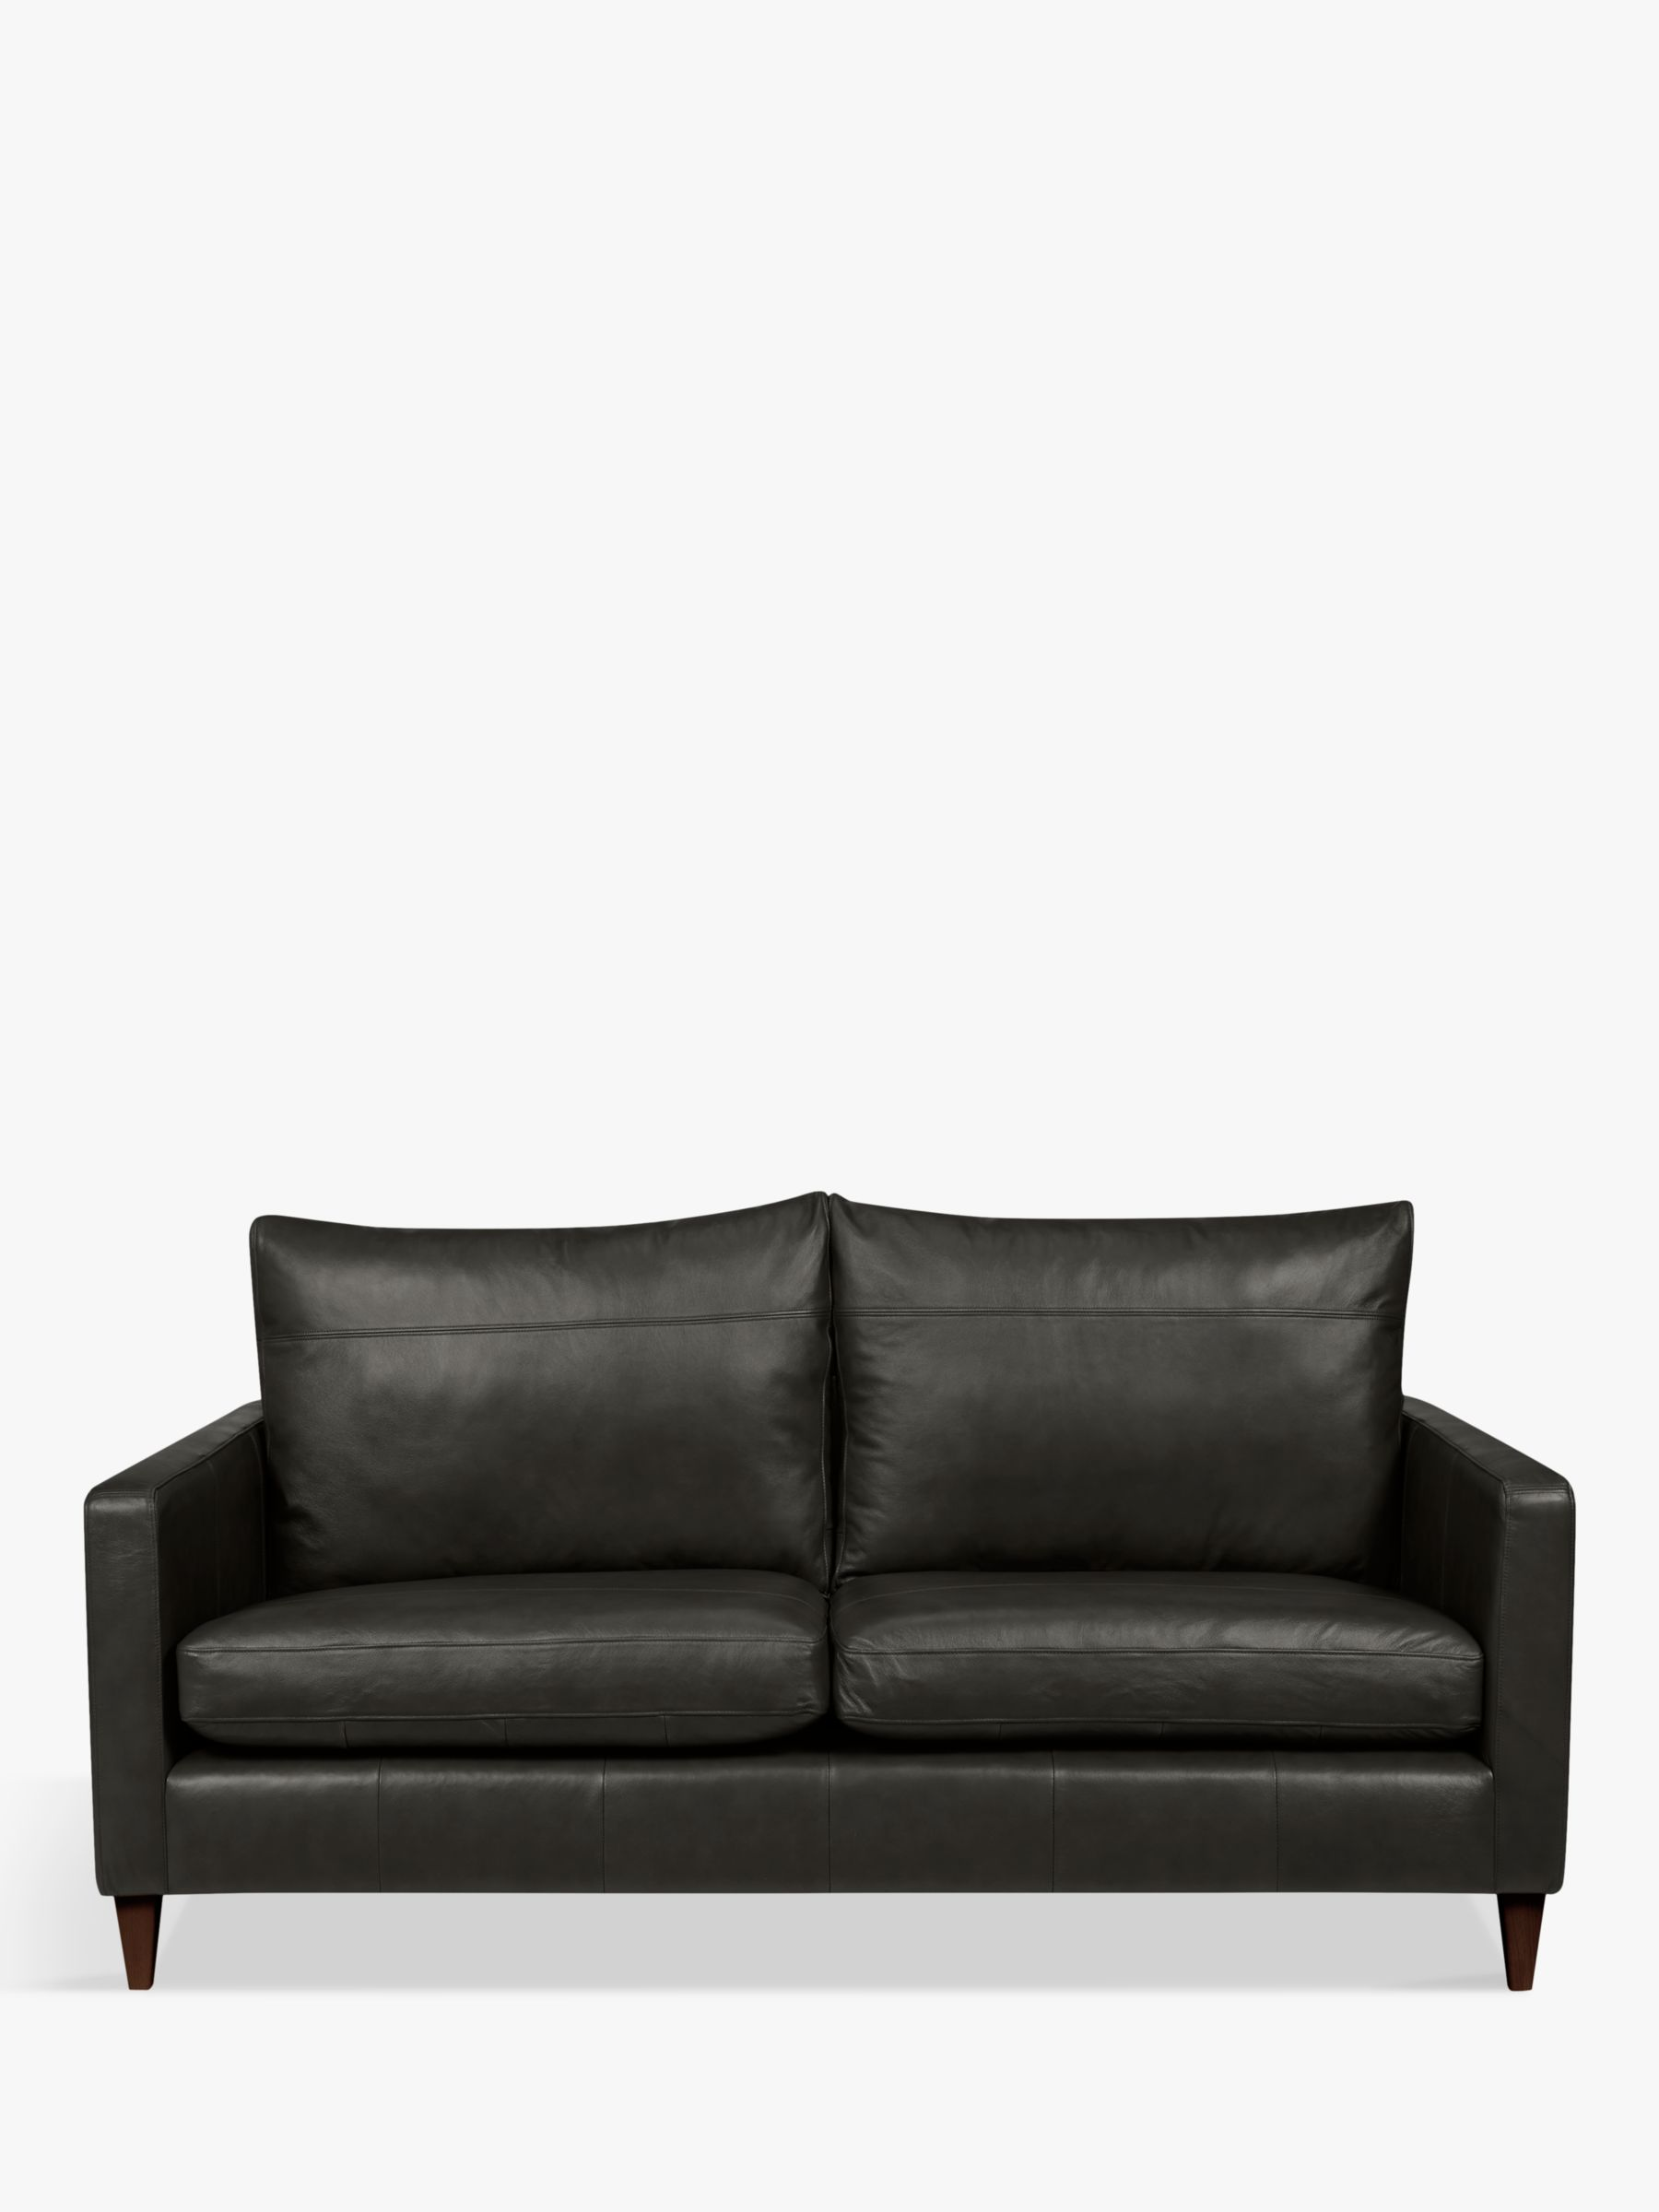 John Lewis & Partners Bailey Medium 2 Seater Leather Sofa, Dark Leg, Winchester Anthracite